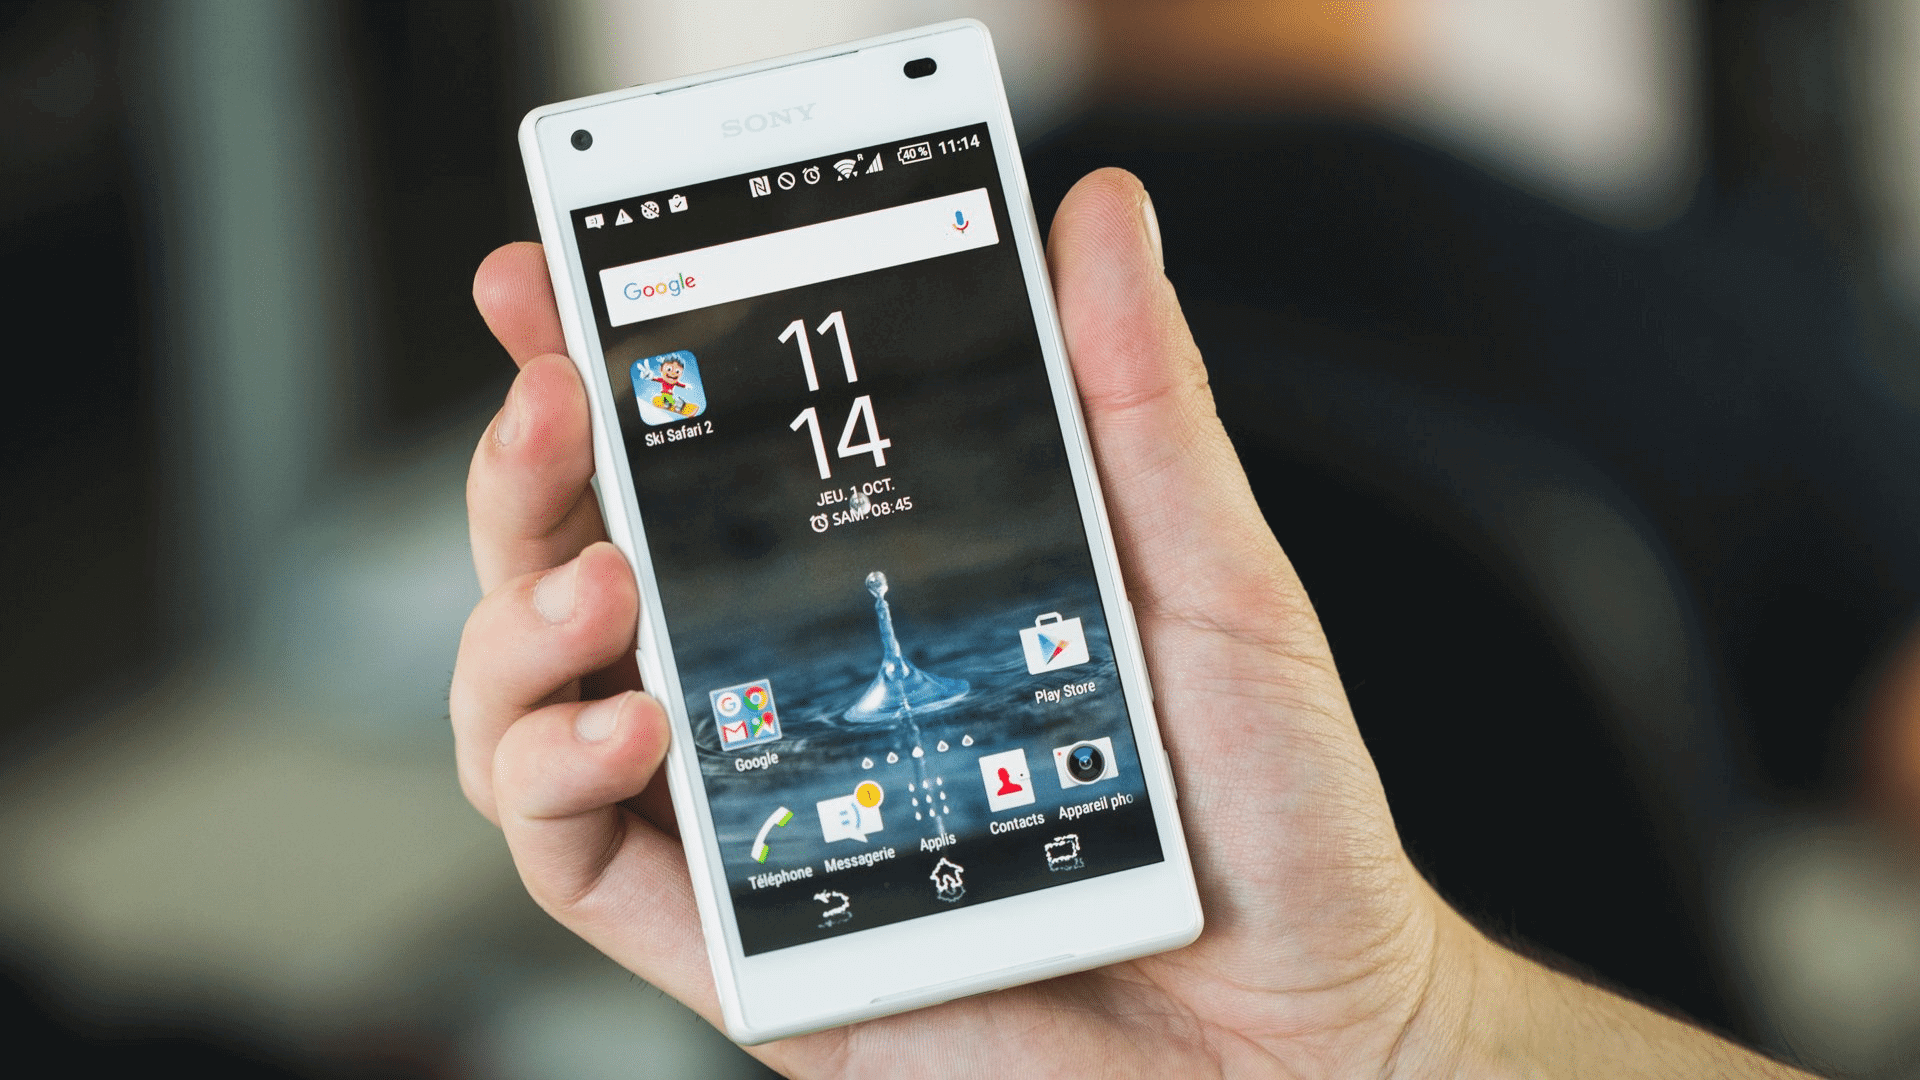 Update Sony Xperia Z5 Compact To Android 7.1 Nougat Via Unofficial Lineage OS 14.1 Custom ROM 1